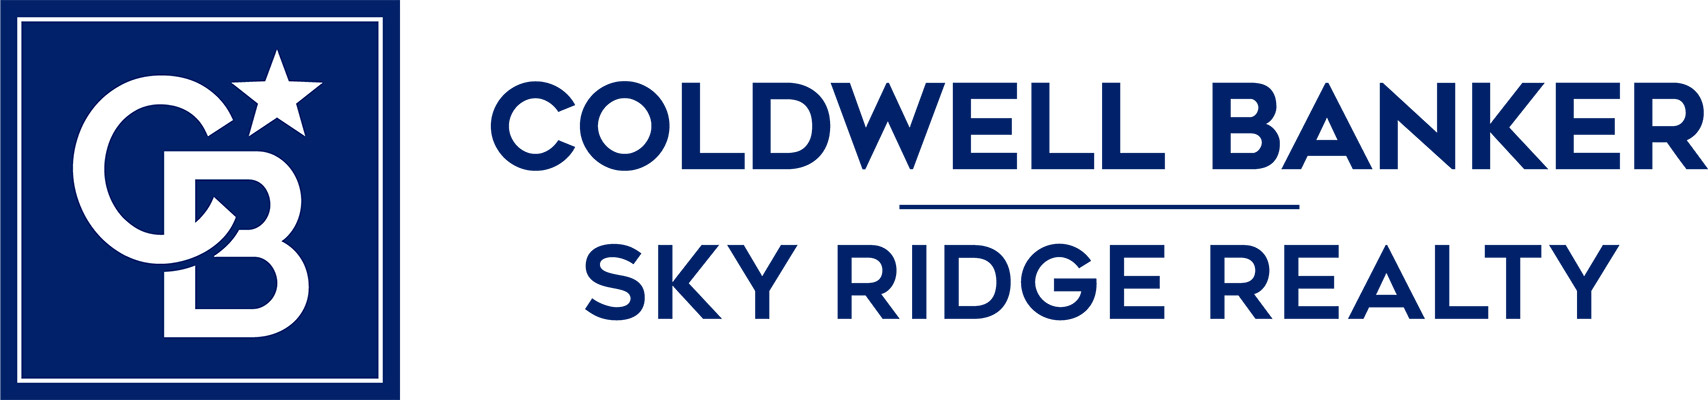 Coldwell Banker Sky Ridge Realty